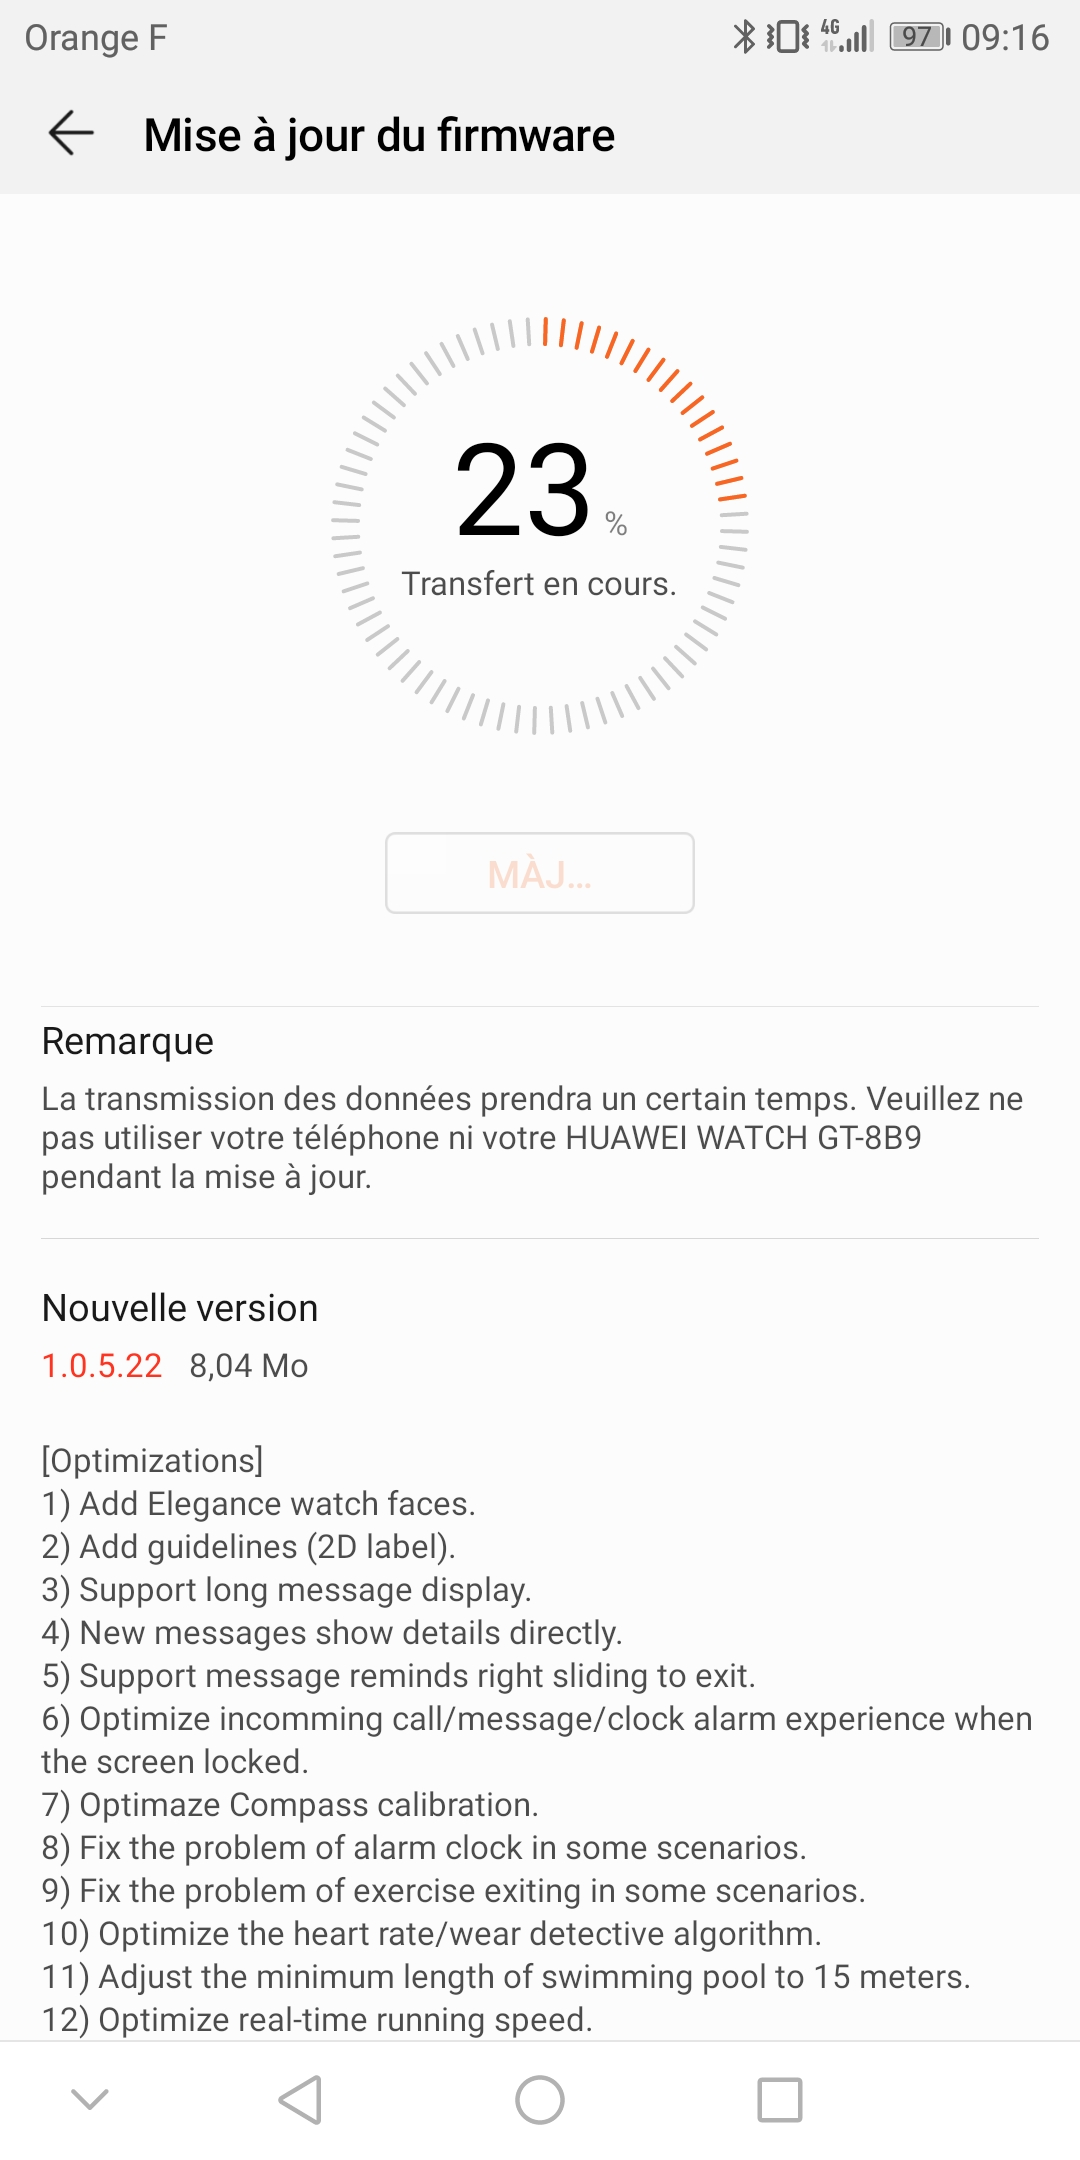 screenshot_20190118-091645-jpg.814 Montres [Firmware] Mise à jour Huawei Watch GT